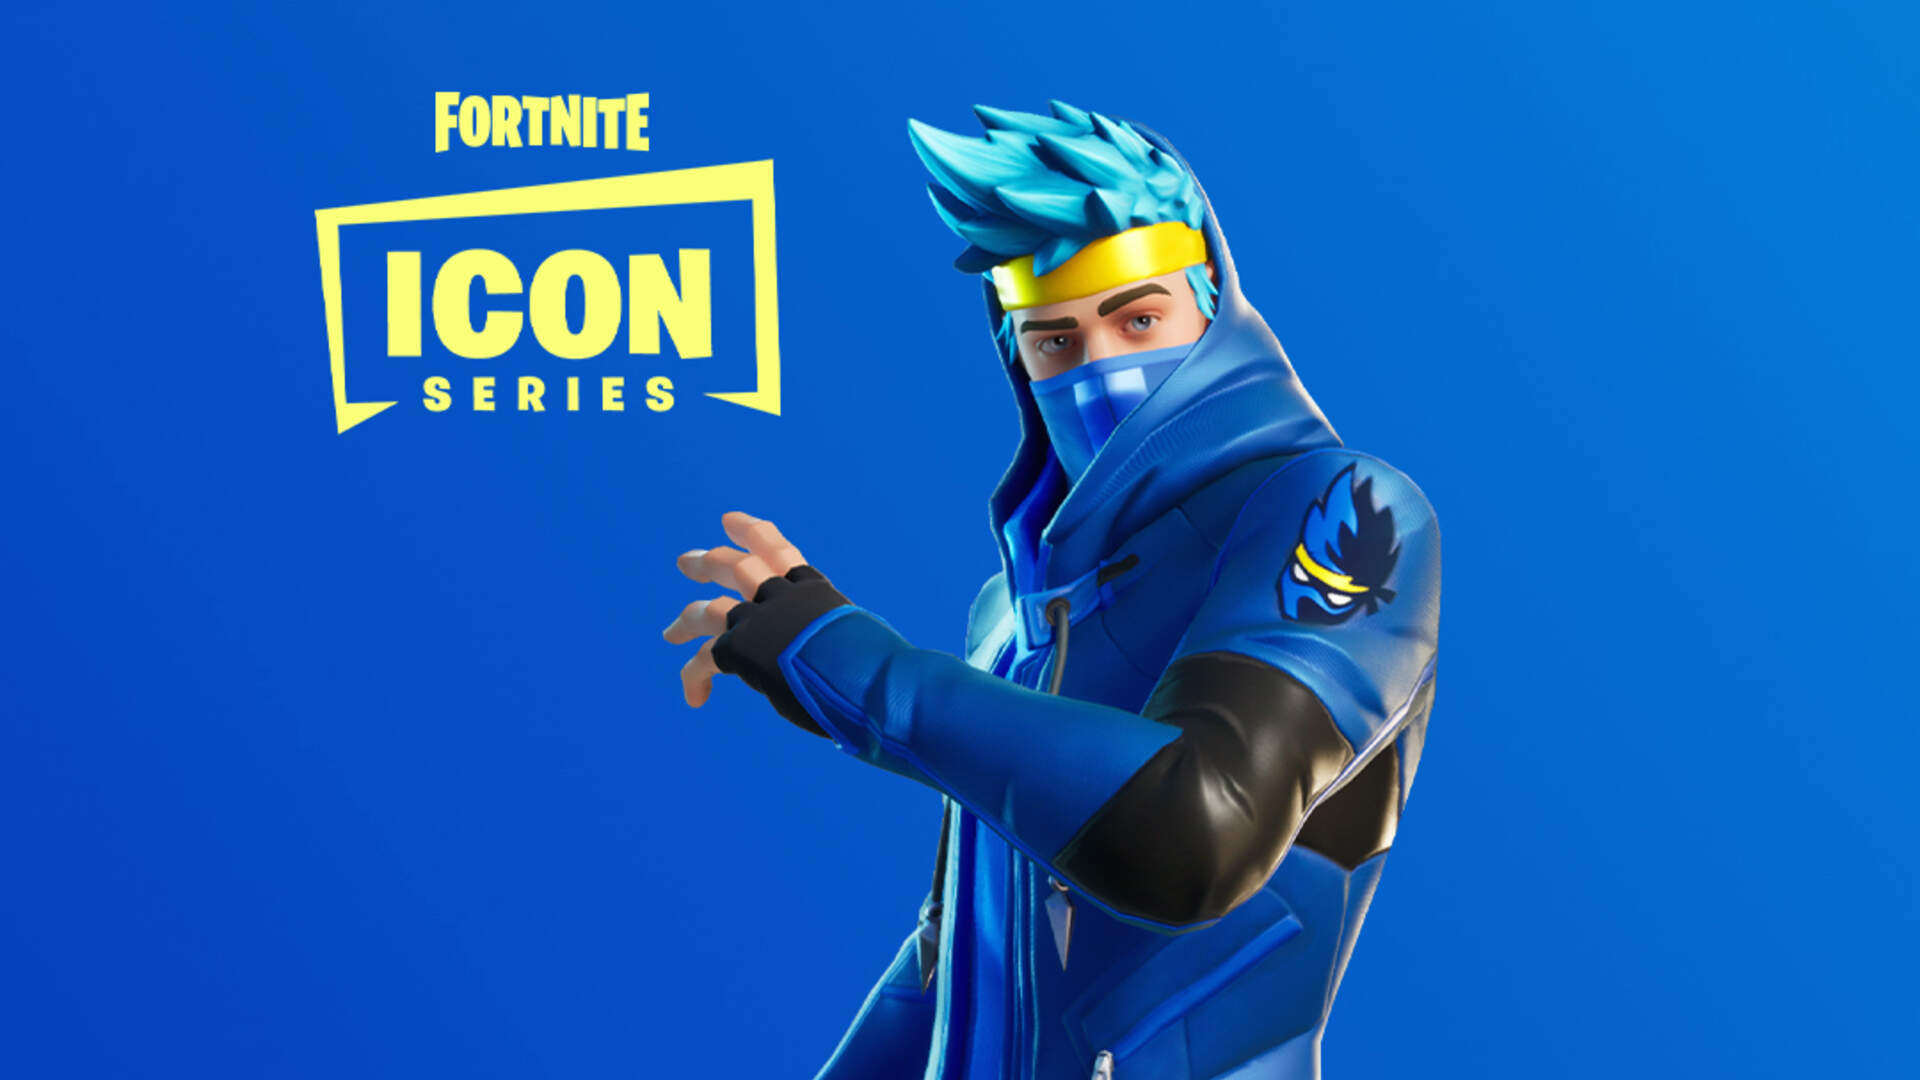 Fortnite Is Introducing Skins Based on Streaming Celebs, Starting With Ninja